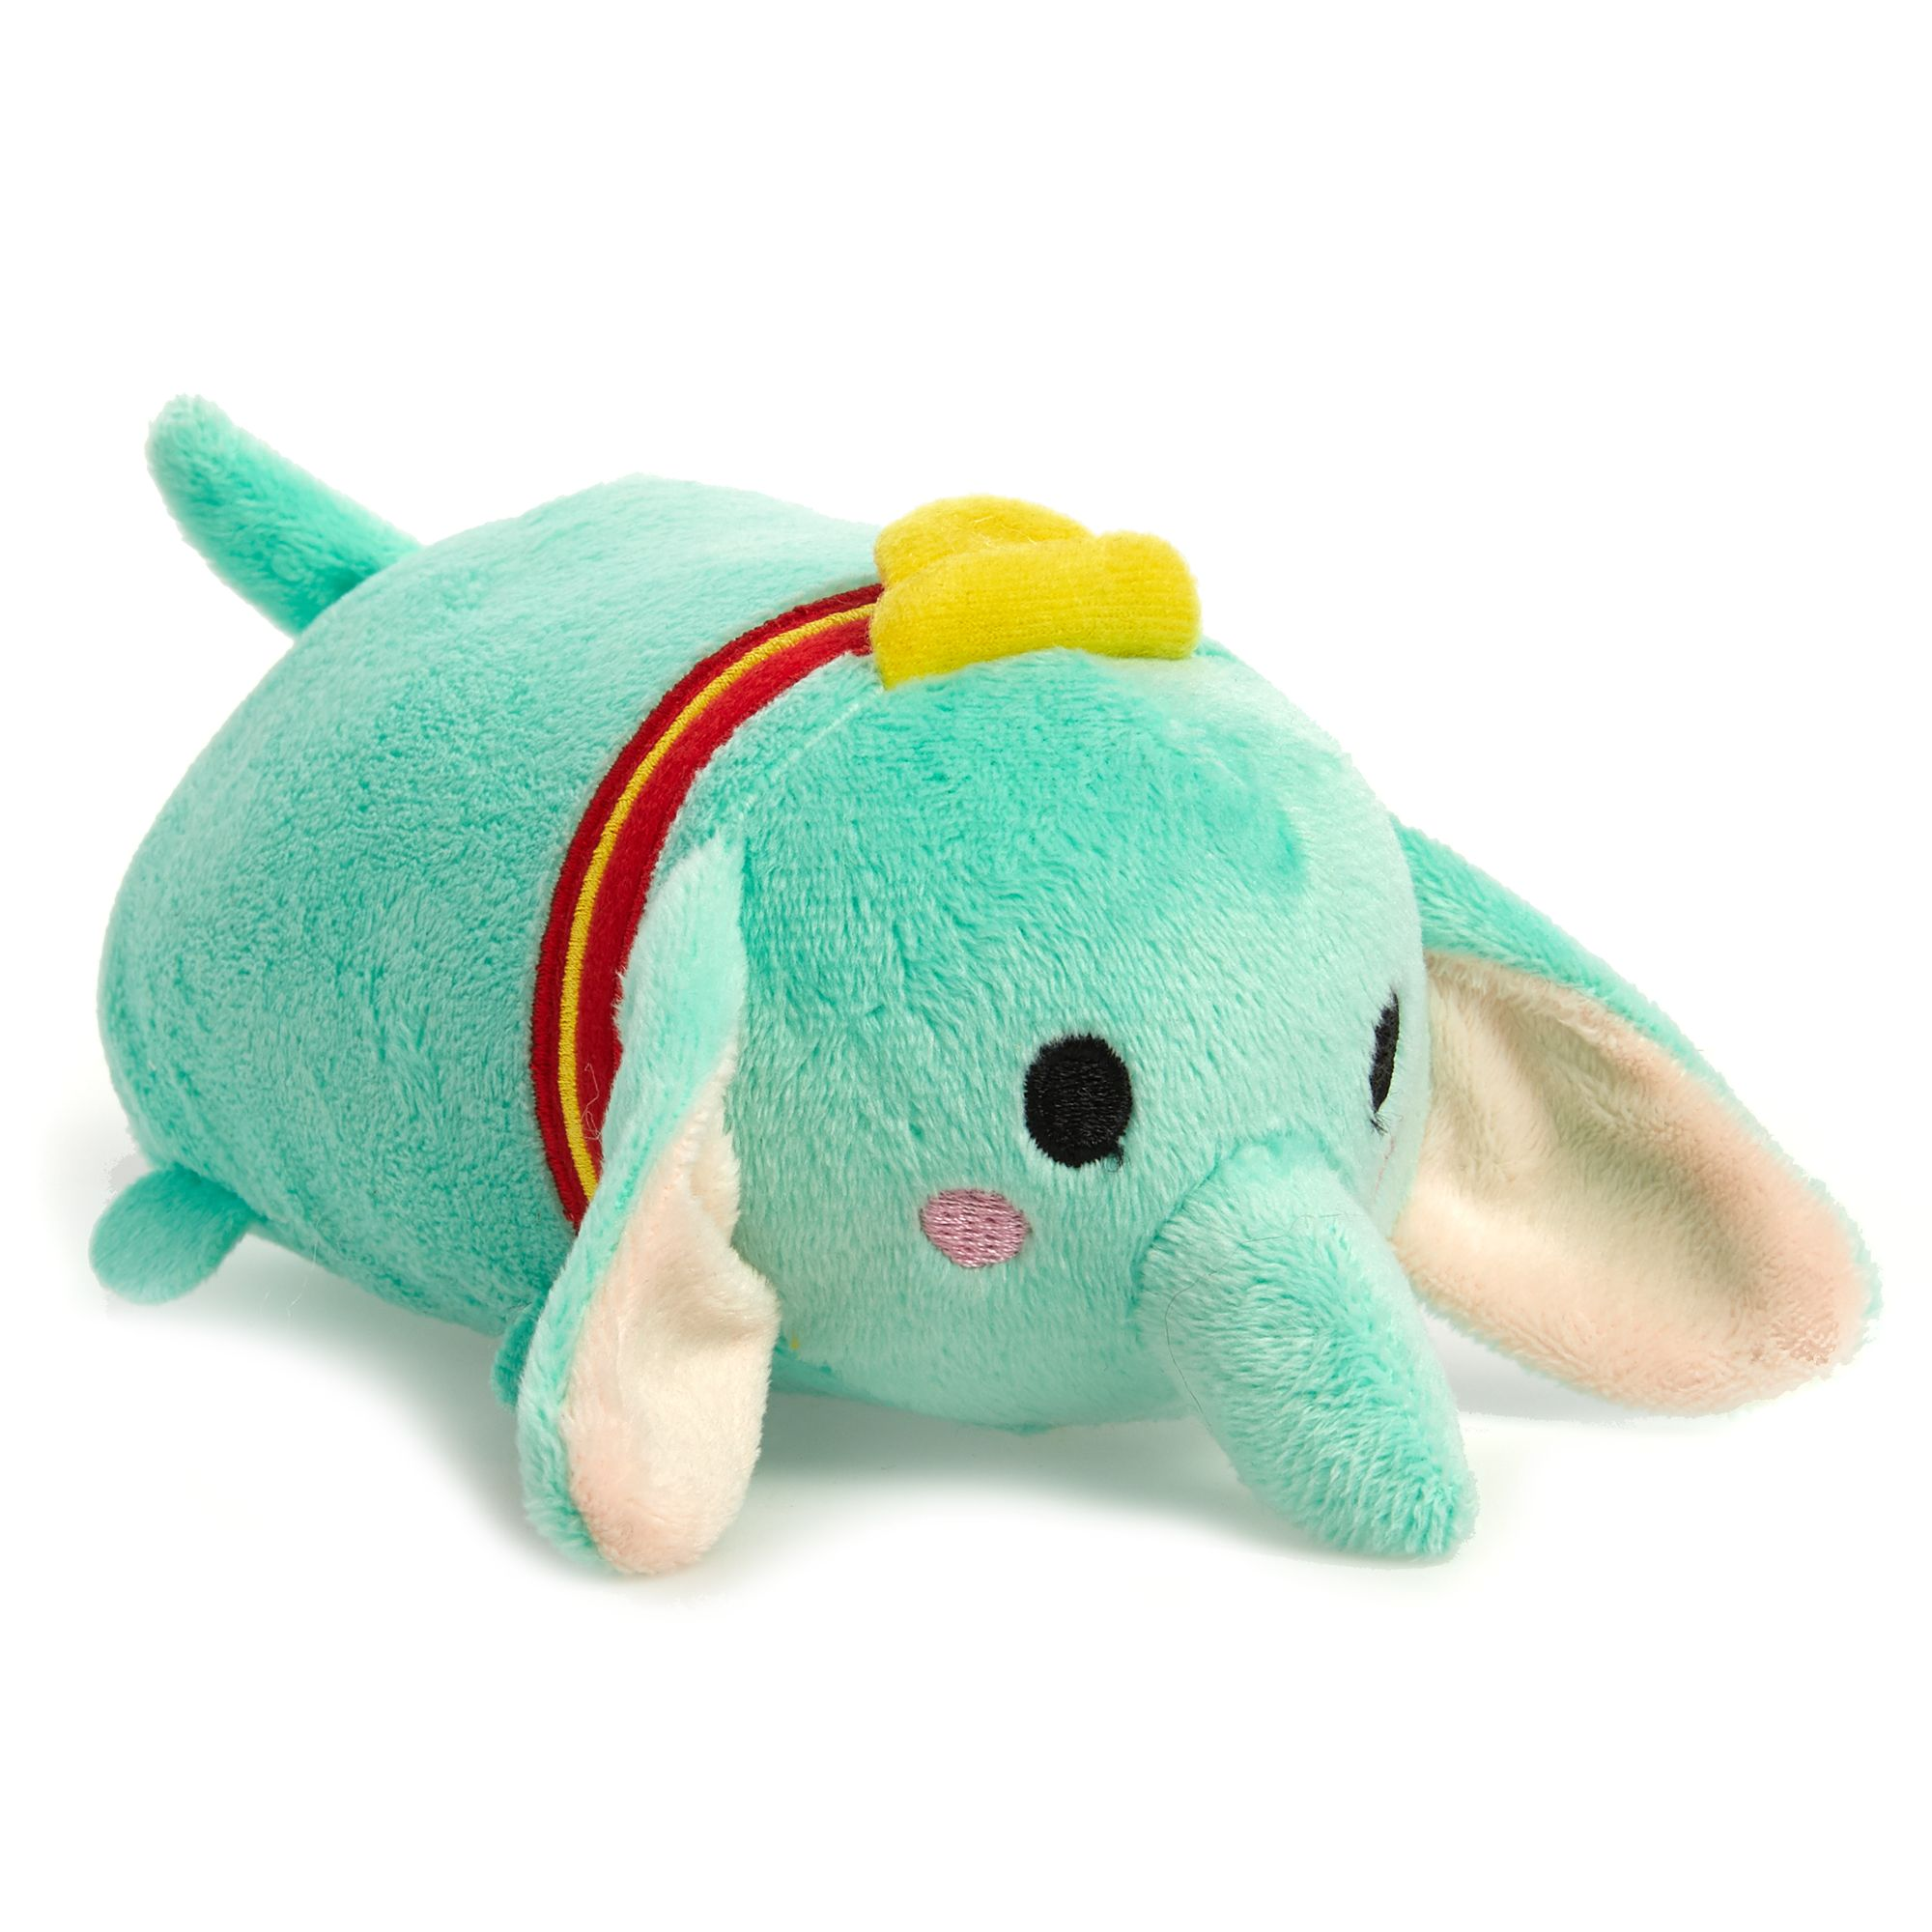 "Disney Dumbo ""Tsum Tsum"" Dog Toy - Plush, Squeaker size: Medium 5274257"